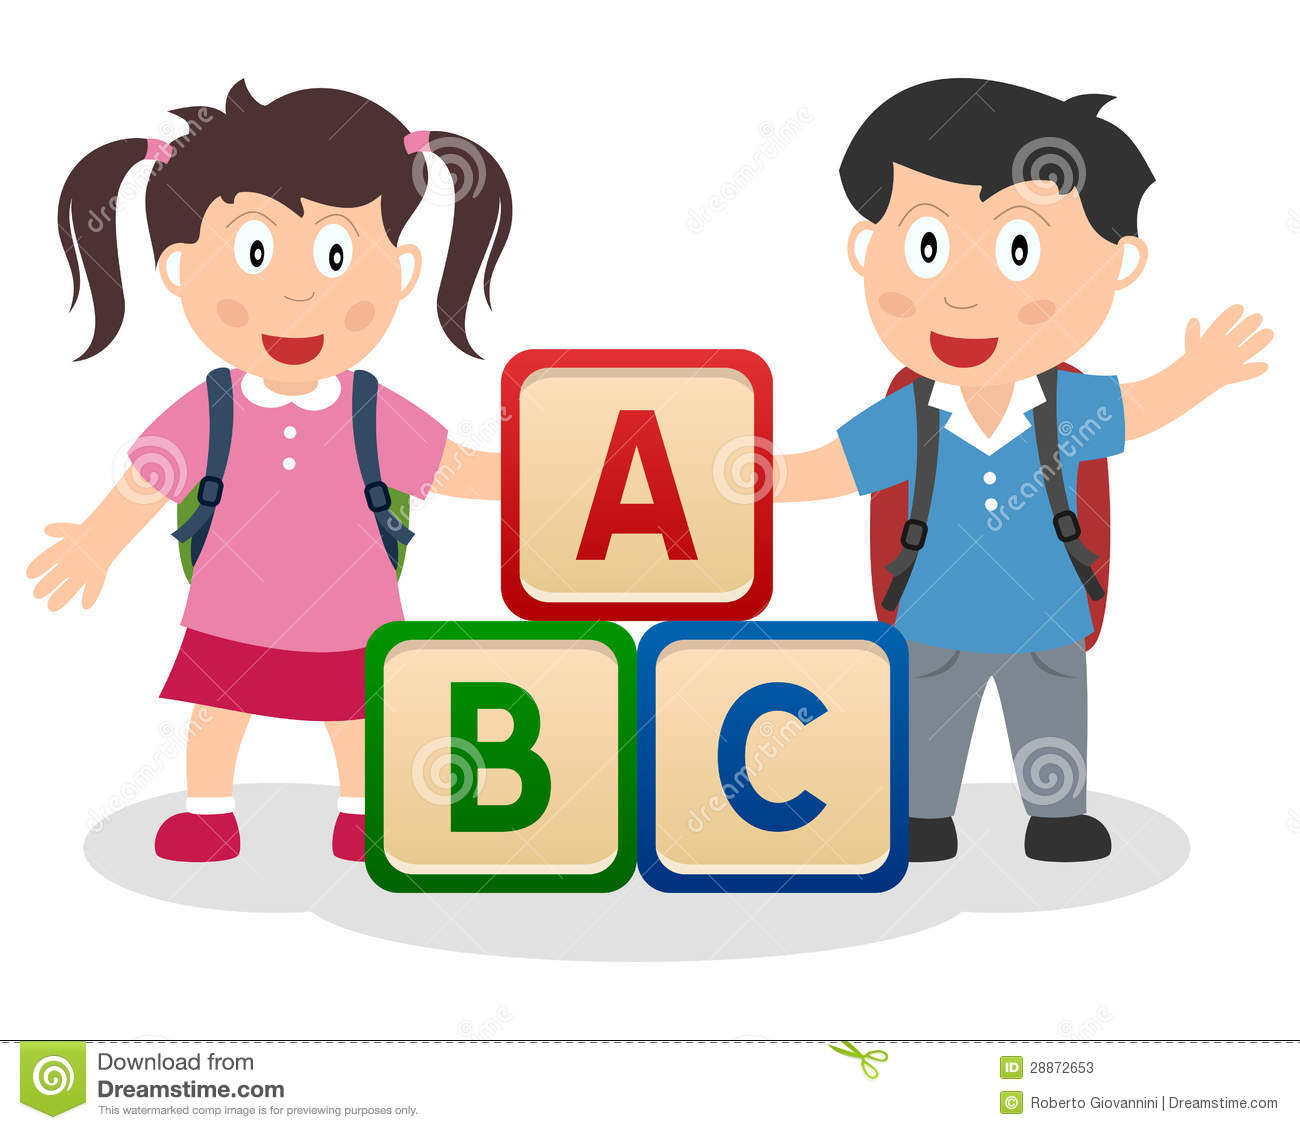 Abc clipart for kids banner black and white download Abc kids clipart - ClipartFest banner black and white download